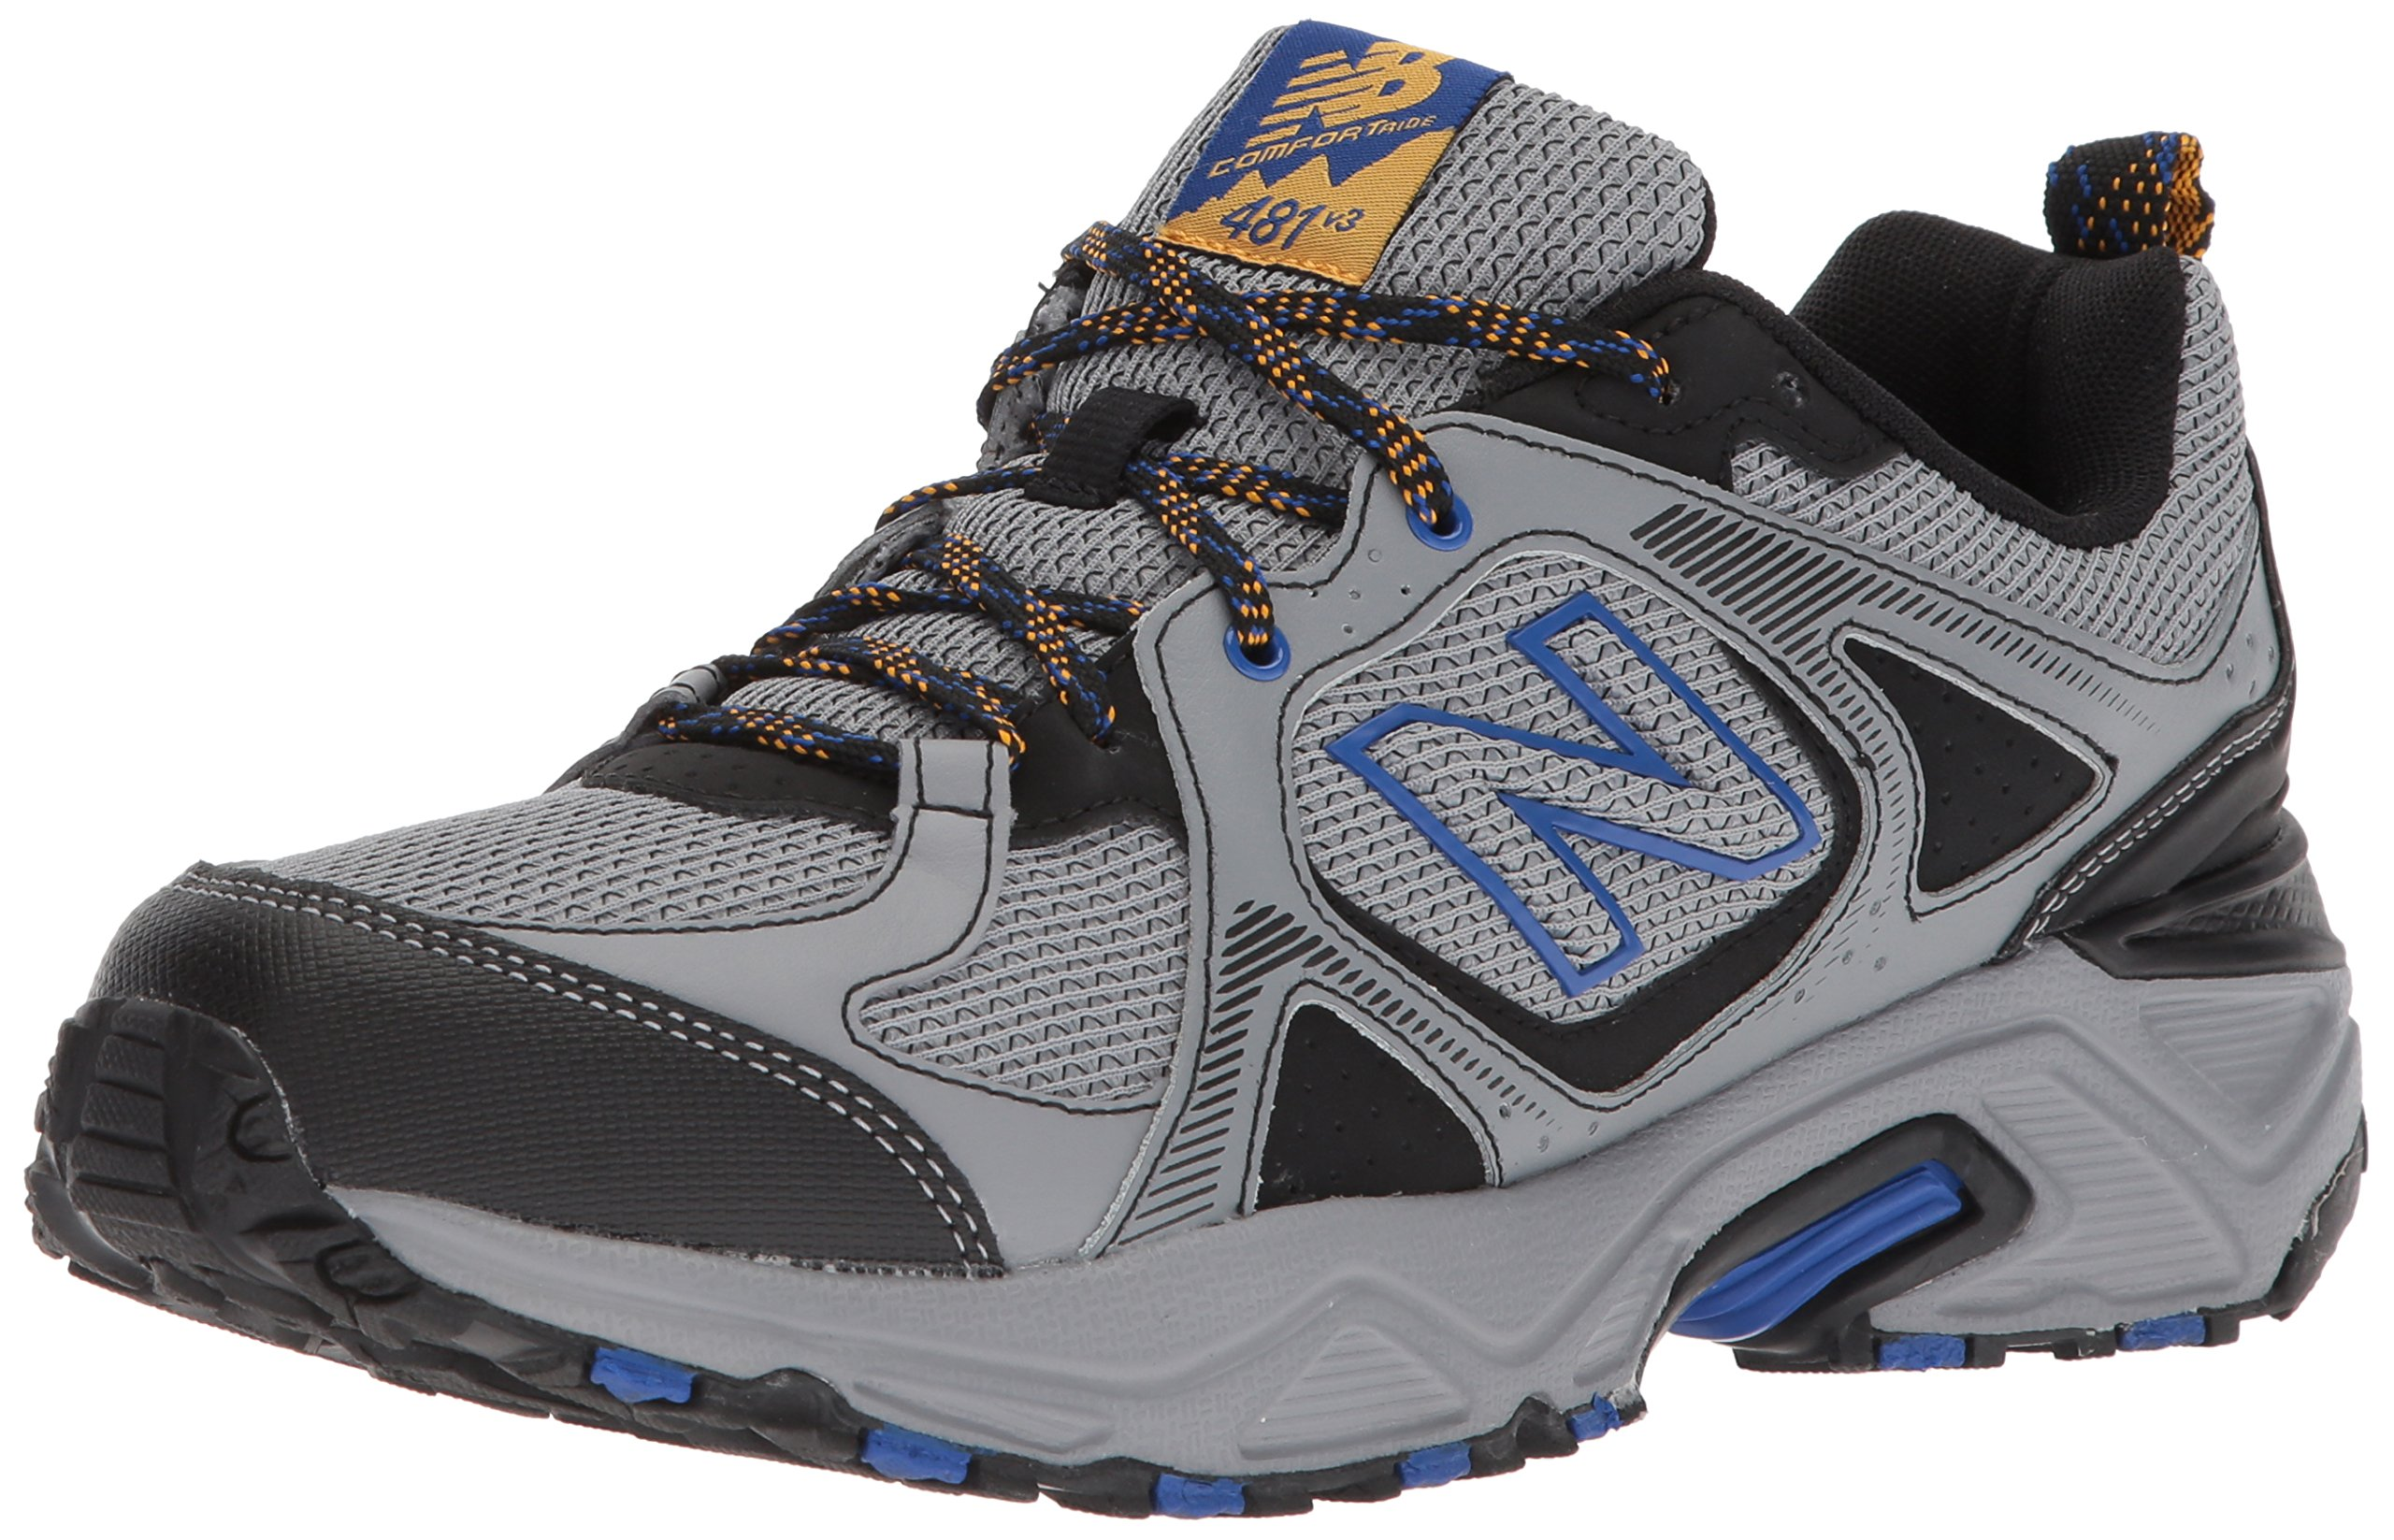 New Balance Men's 481V3 Cushioning Trail Running Shoe, Steel, 7 D US by New Balance